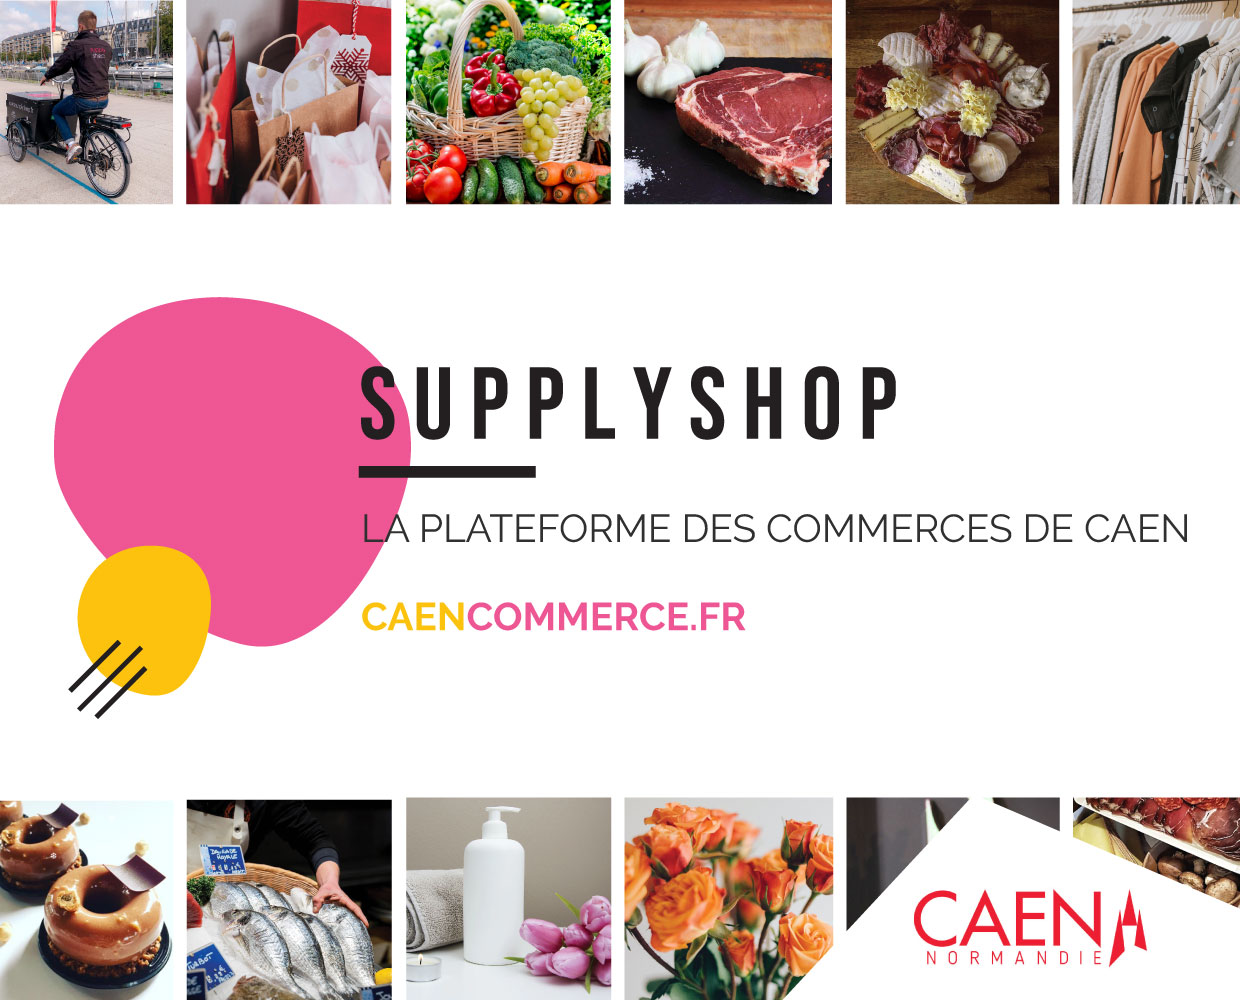 SUPPLYSHOP CAEN COMMERCE